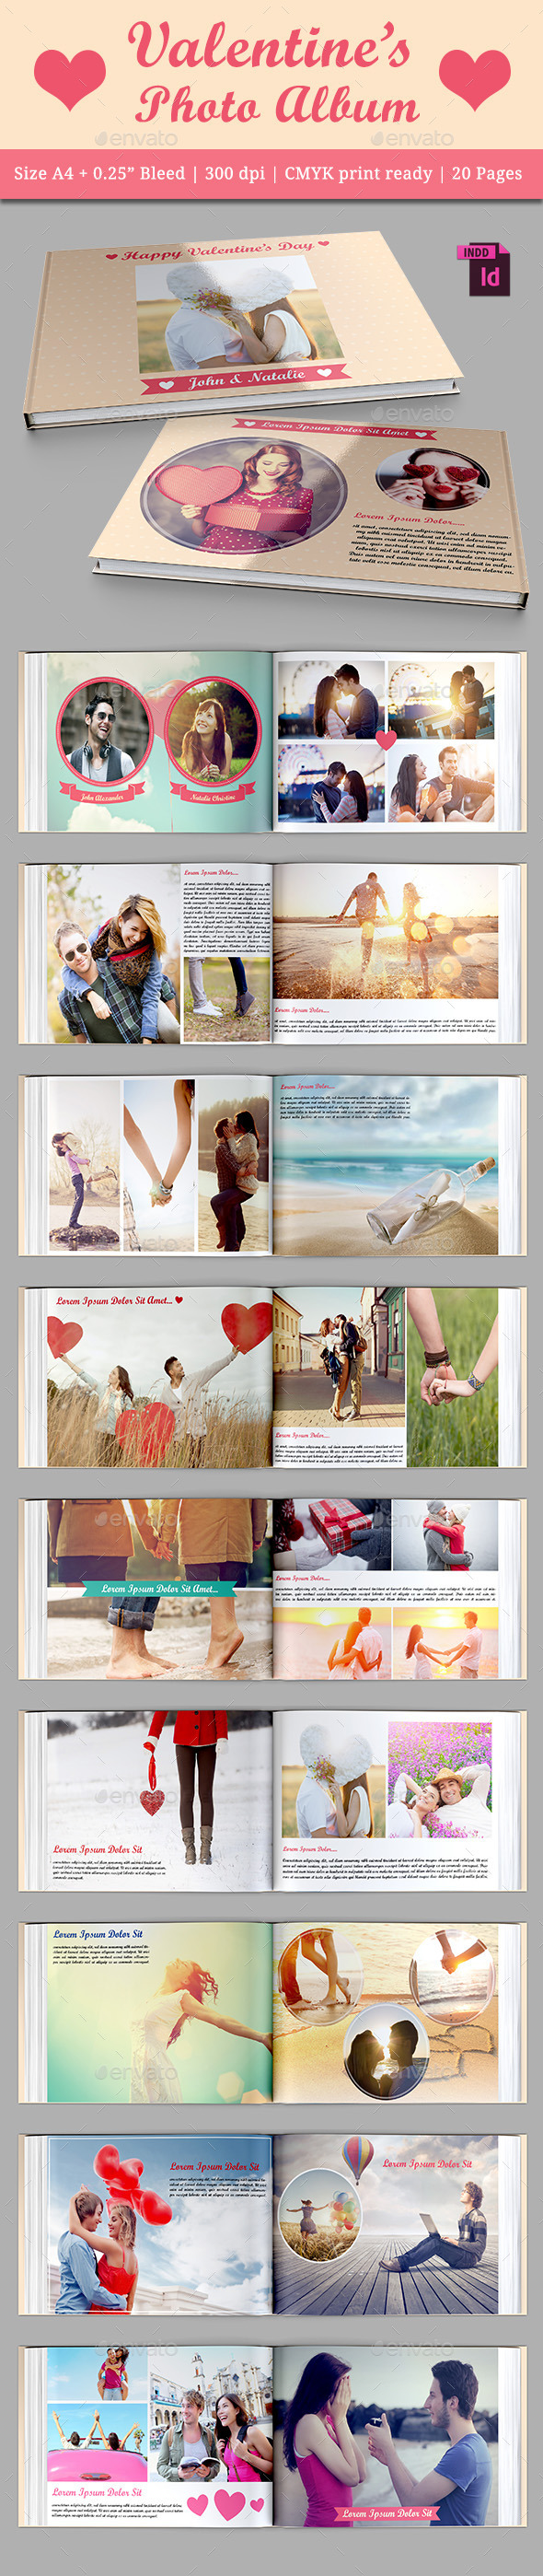 GraphicRiver Valentine s Photo Album 10079552